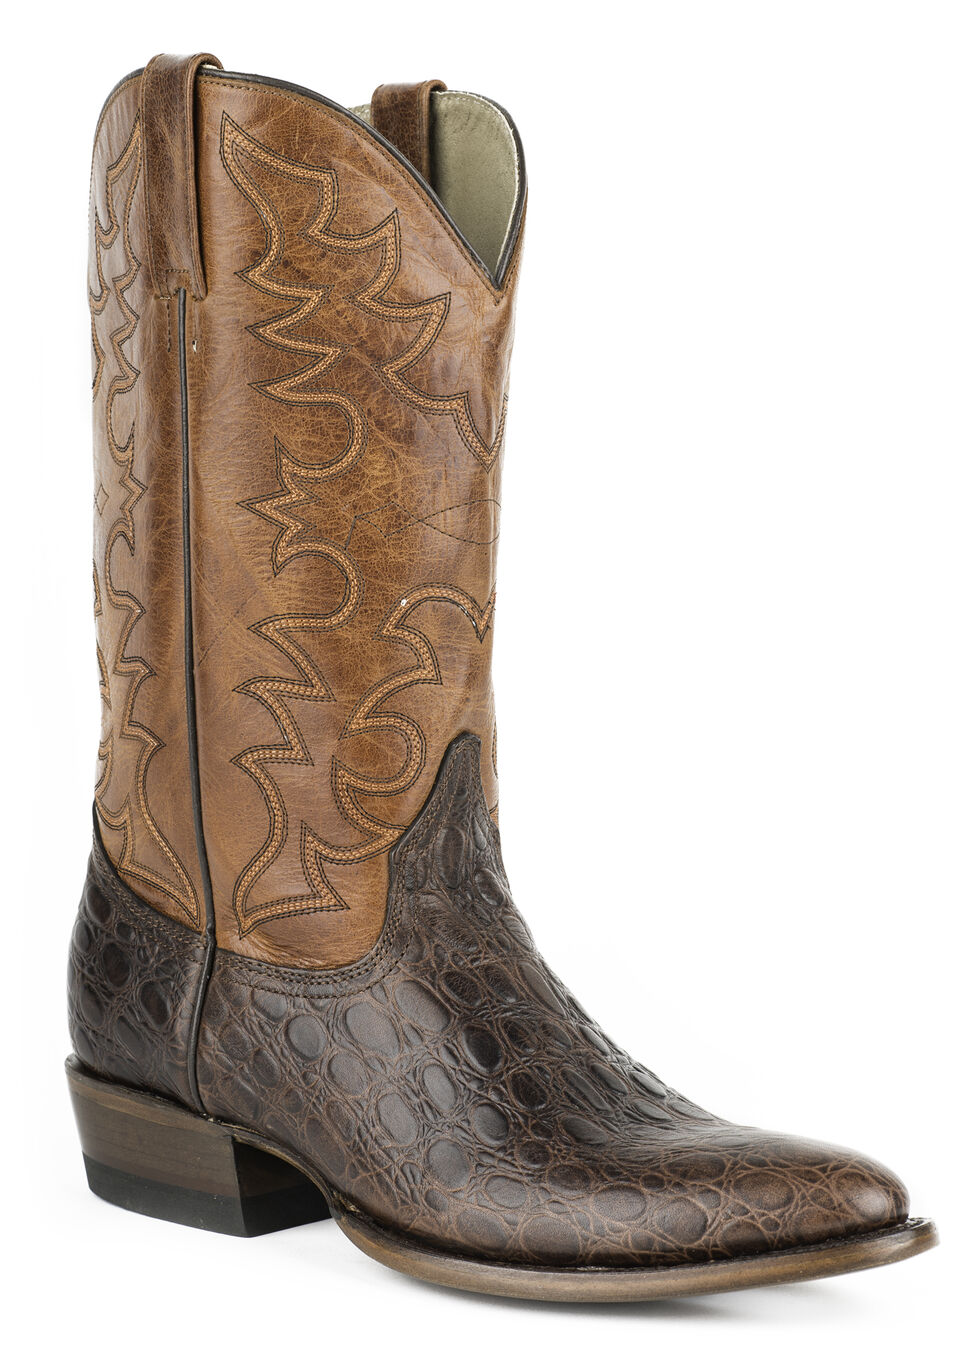 Roper Sea Turtle Print Tall Cowboy Boots - Round Toe, Dark Brown, hi-res